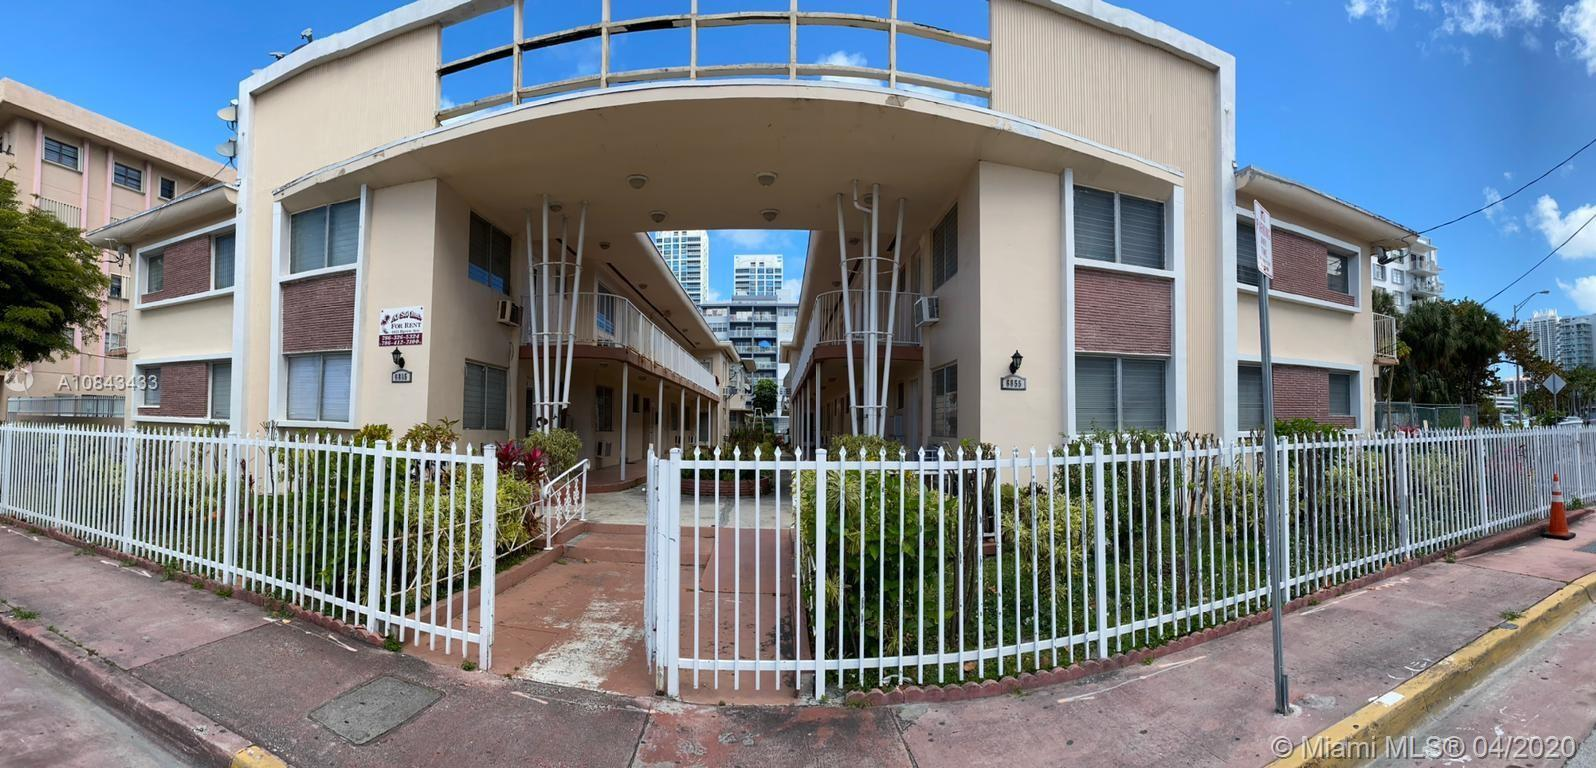 6855  Byron Ave  For Sale A10843433, FL